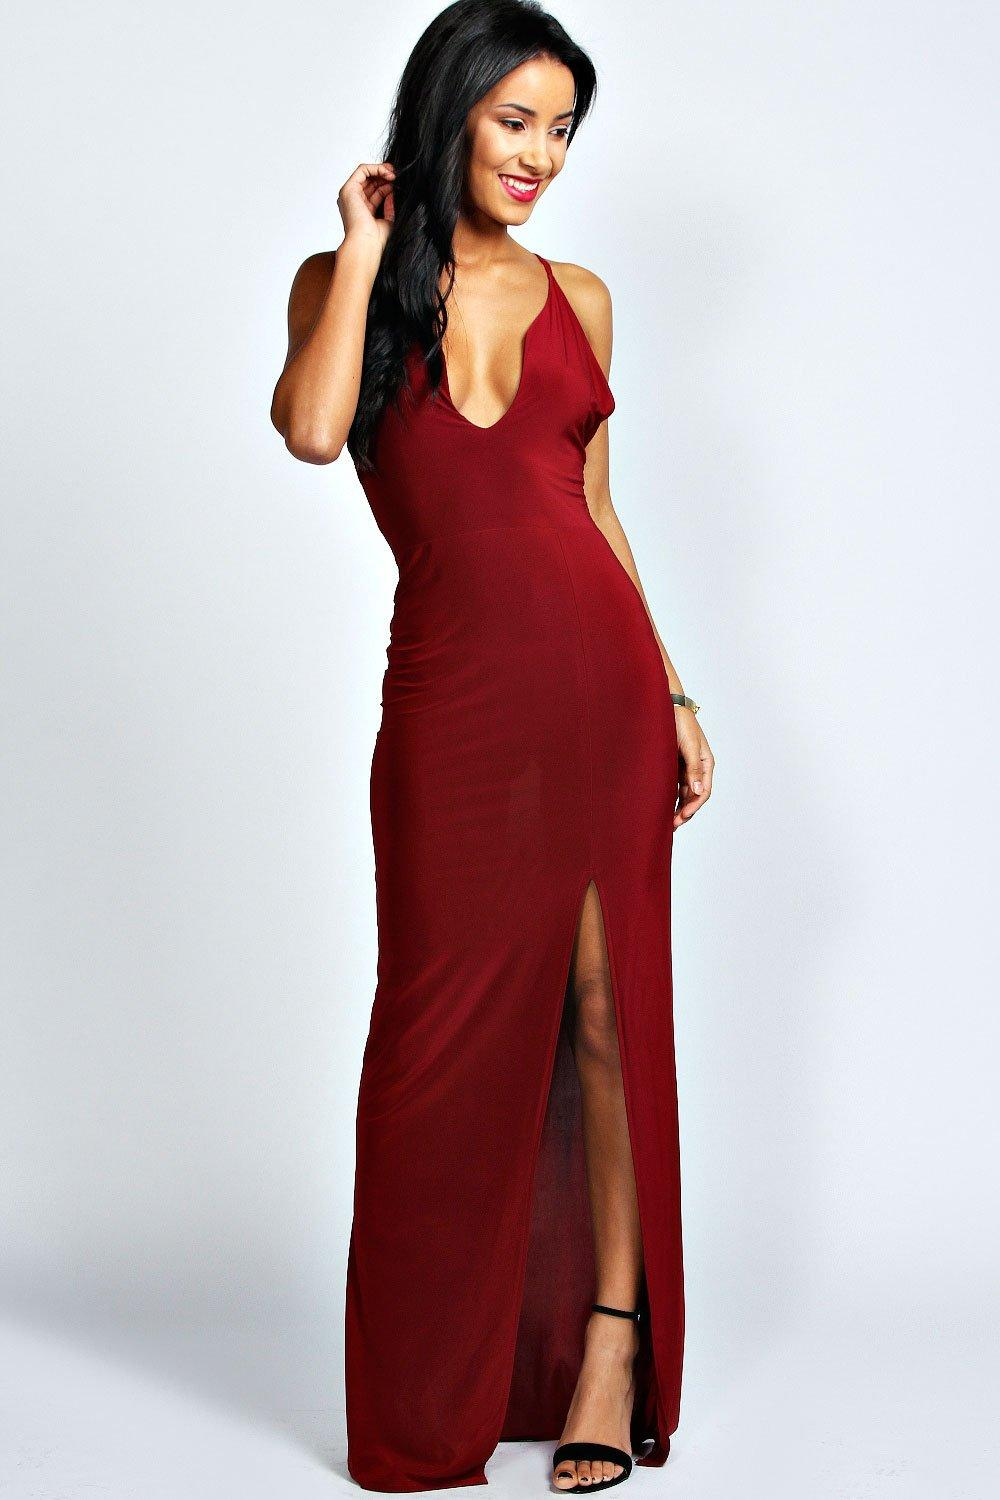 b46803c9e5ab Plunge Neck Front Split Maxi Dress. Hover to zoom